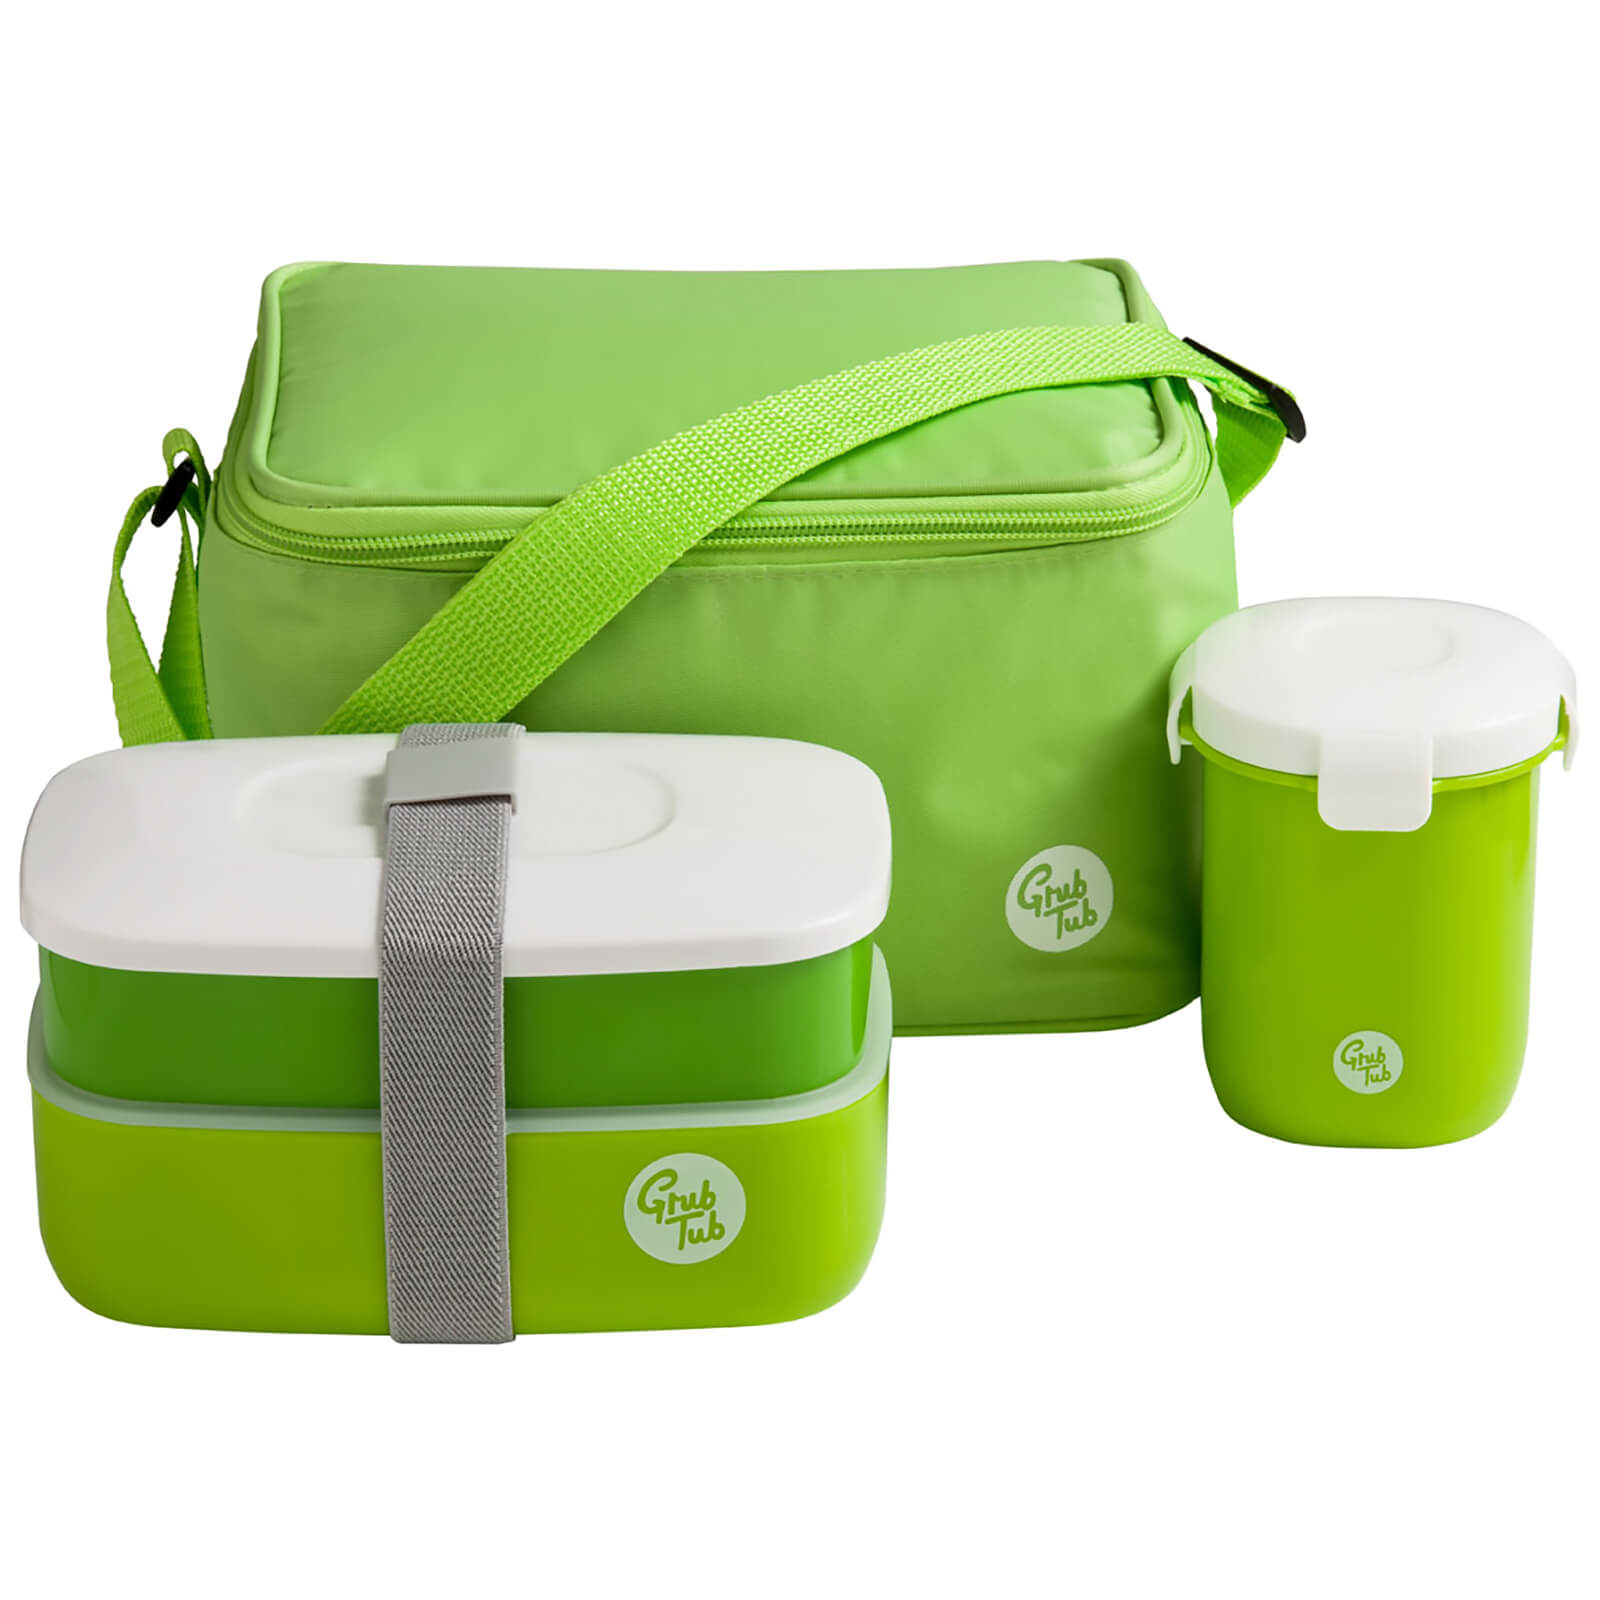 Grub Tub Lunch Box with Cool Bag and Sealing Cup - Green